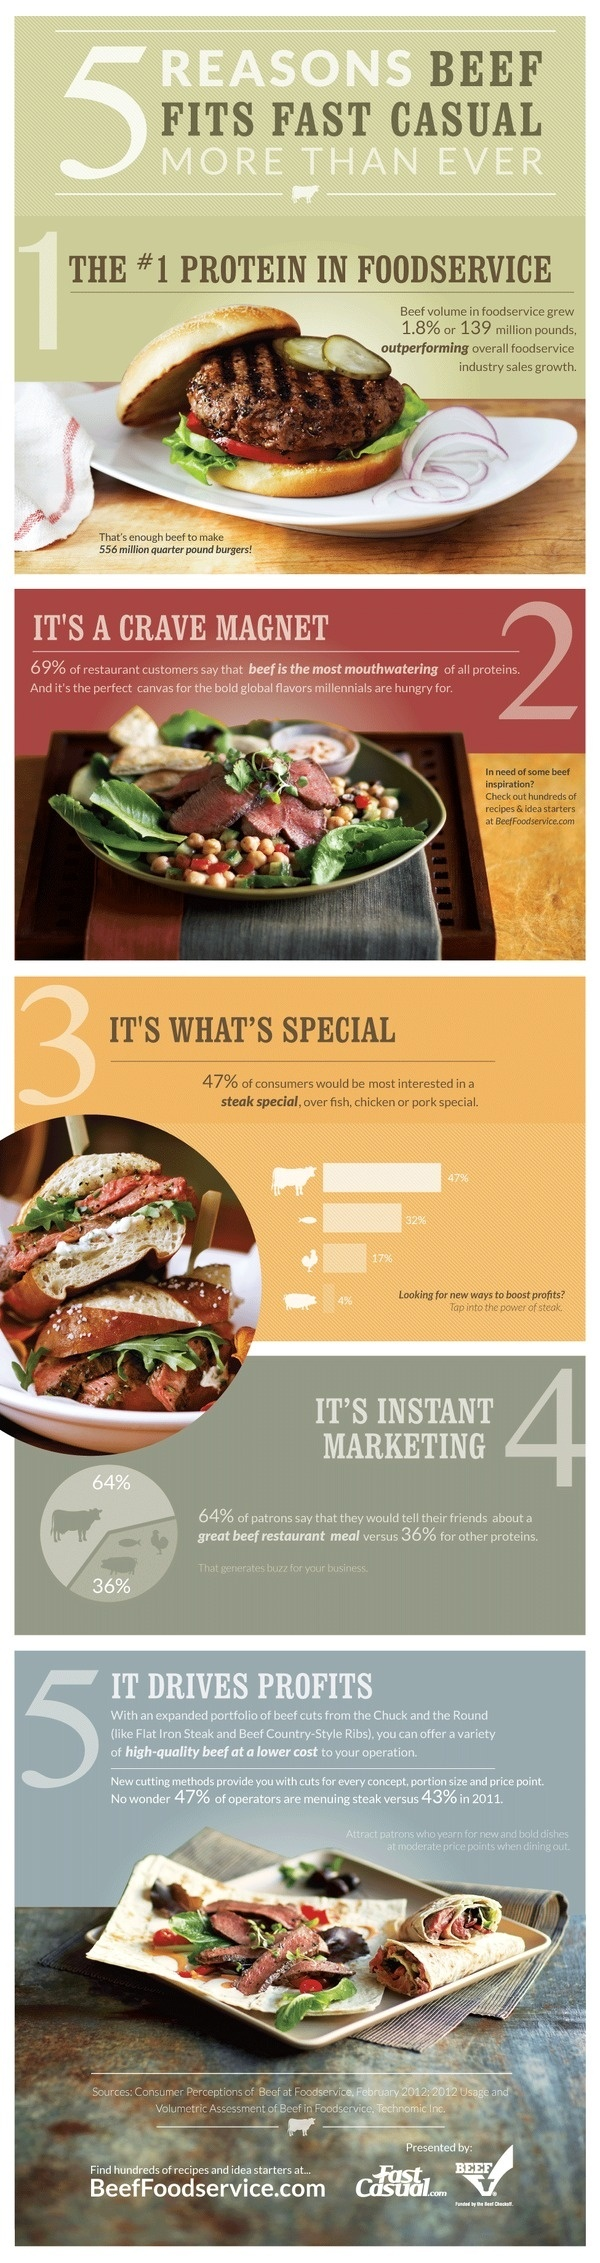 5 Reasons Beef Fits Fast Casual [infographic] #fast #casual #beef #protein